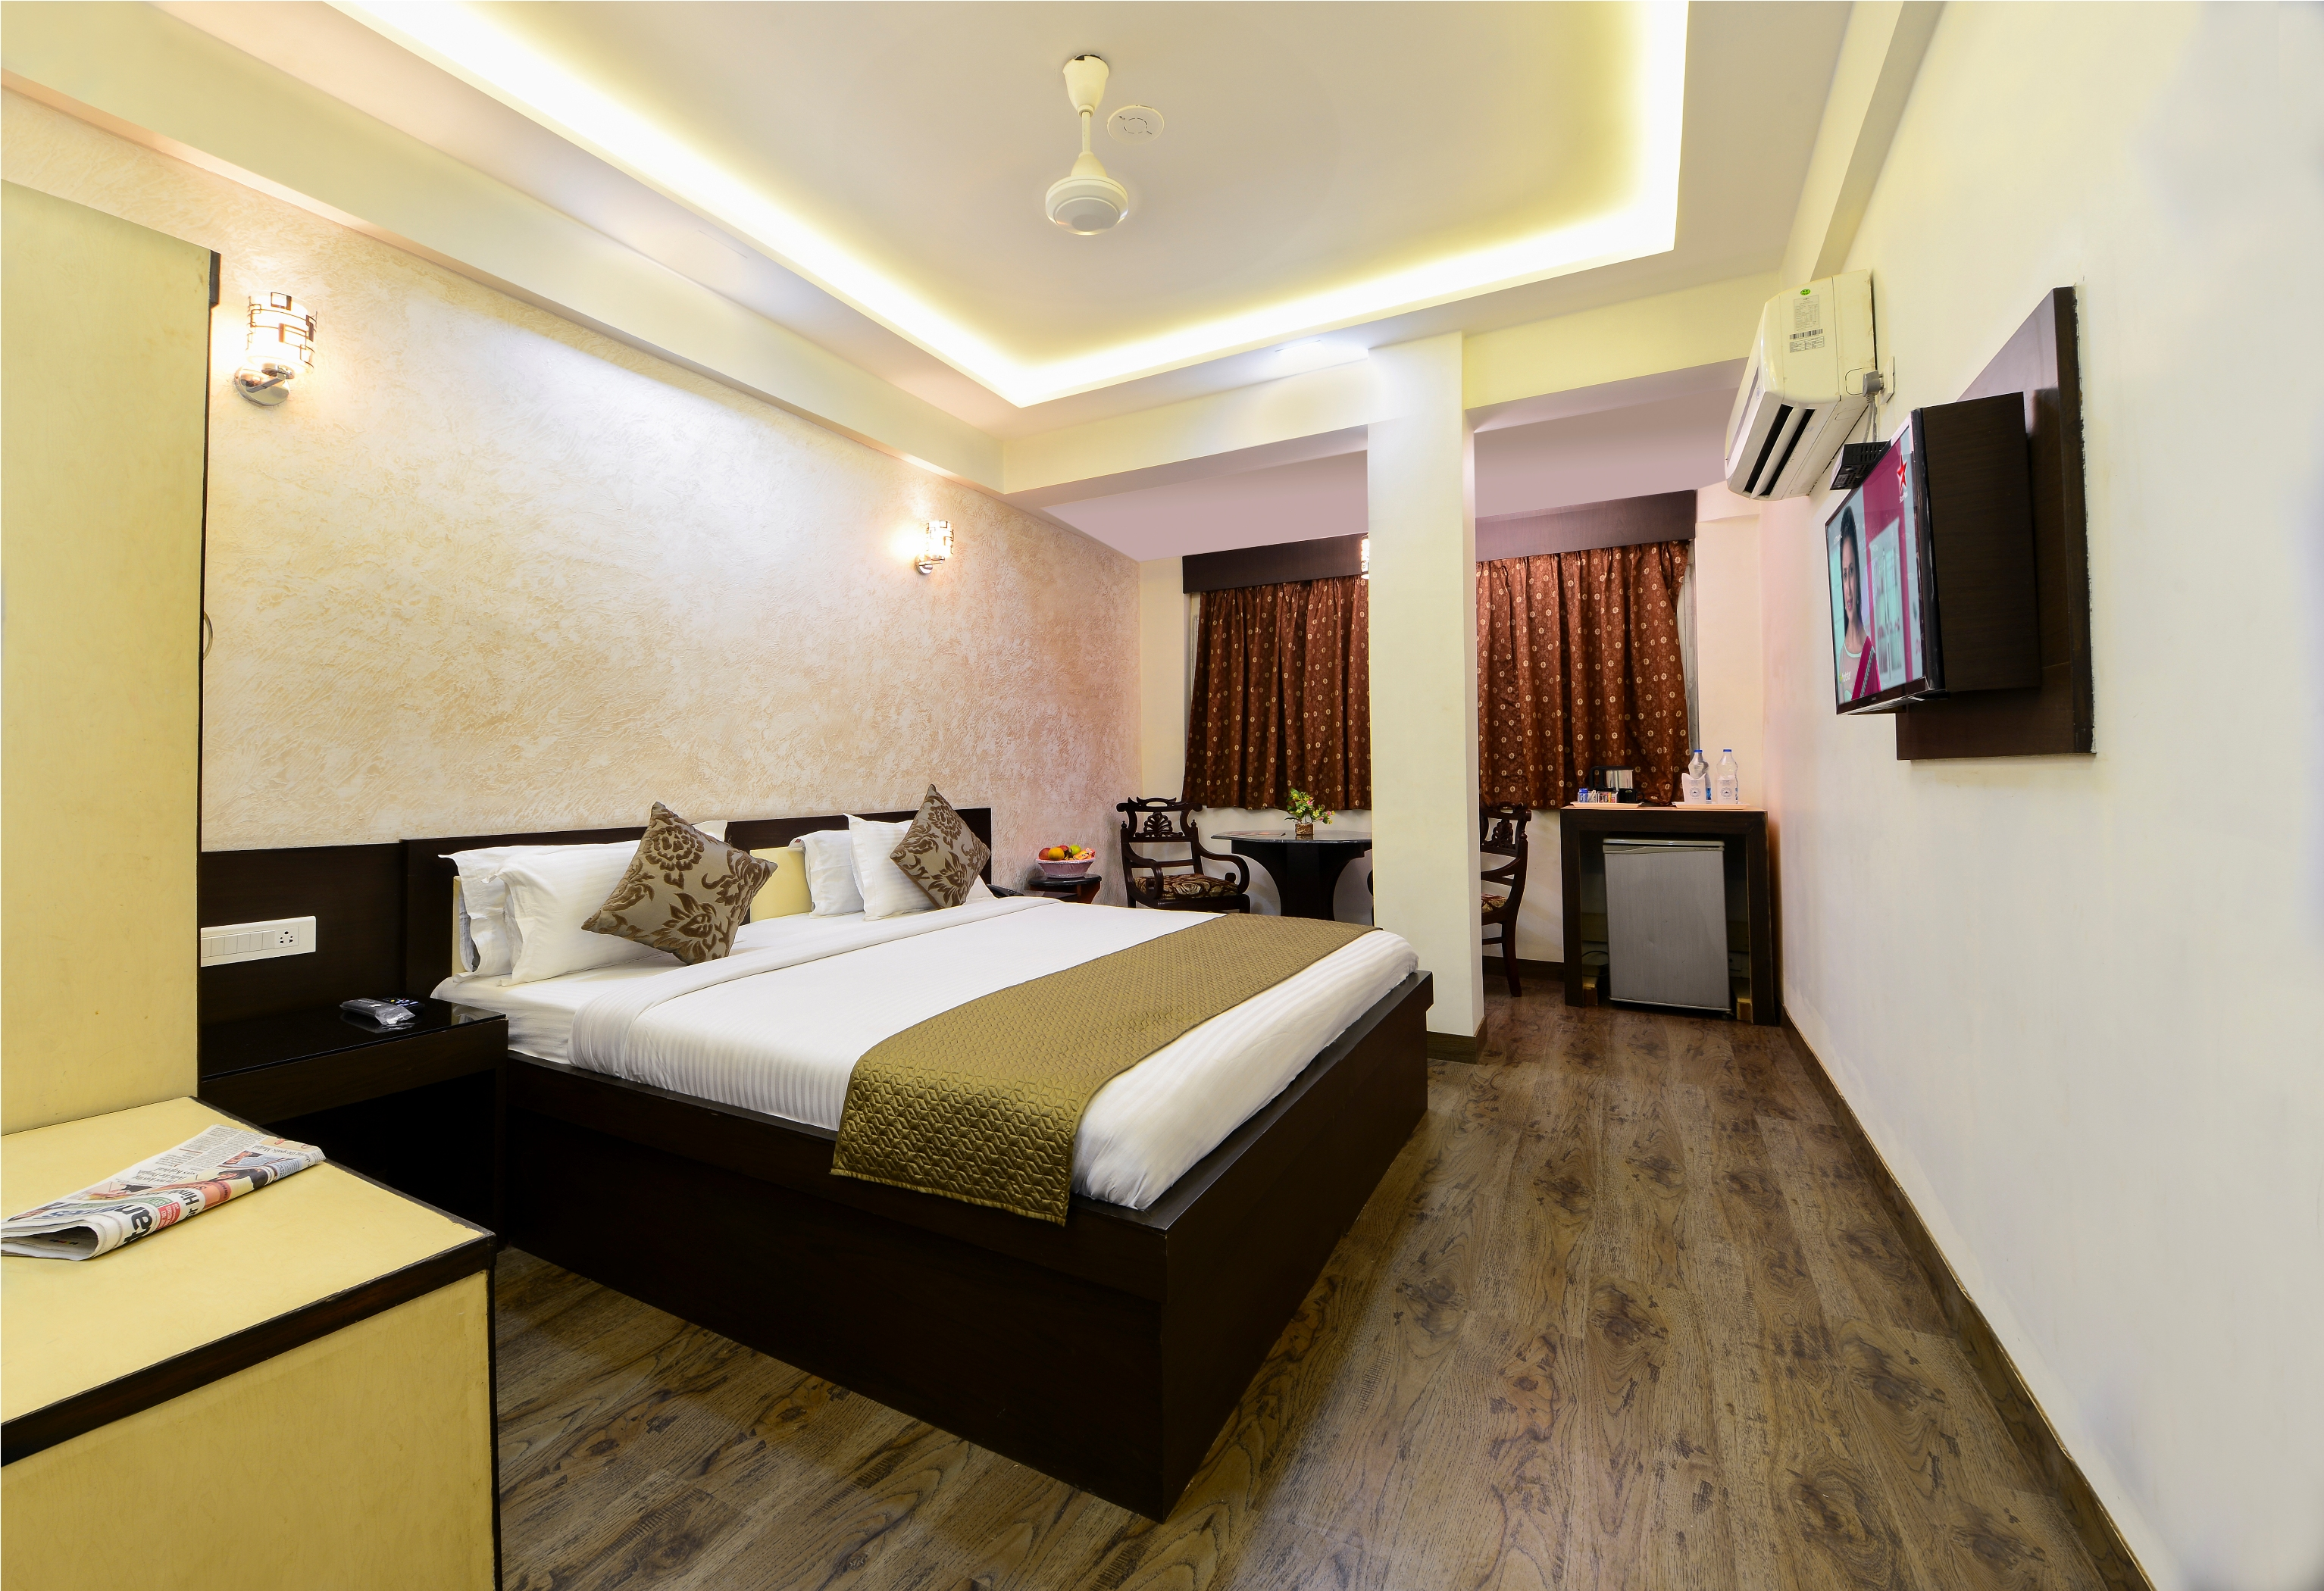 Deluxe AC Room, HOTEL ASHISH PALACE-AGRA - Budget Hotels in Agra